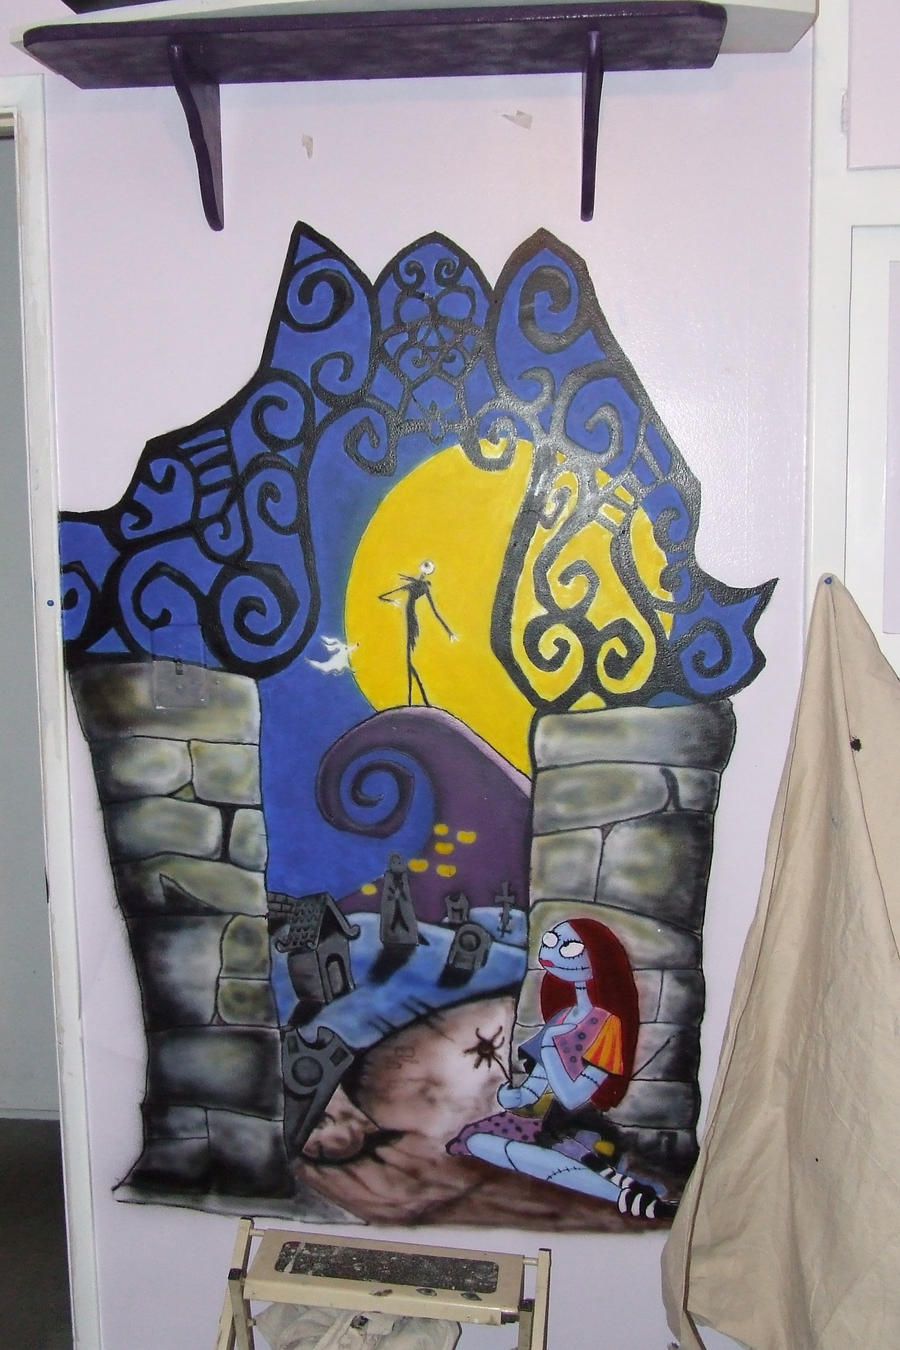 Superb Nightmare Before Christmas Mural By Tikijohn Nightmare Before Christmas  Mural By Tikijohn Home Design Ideas